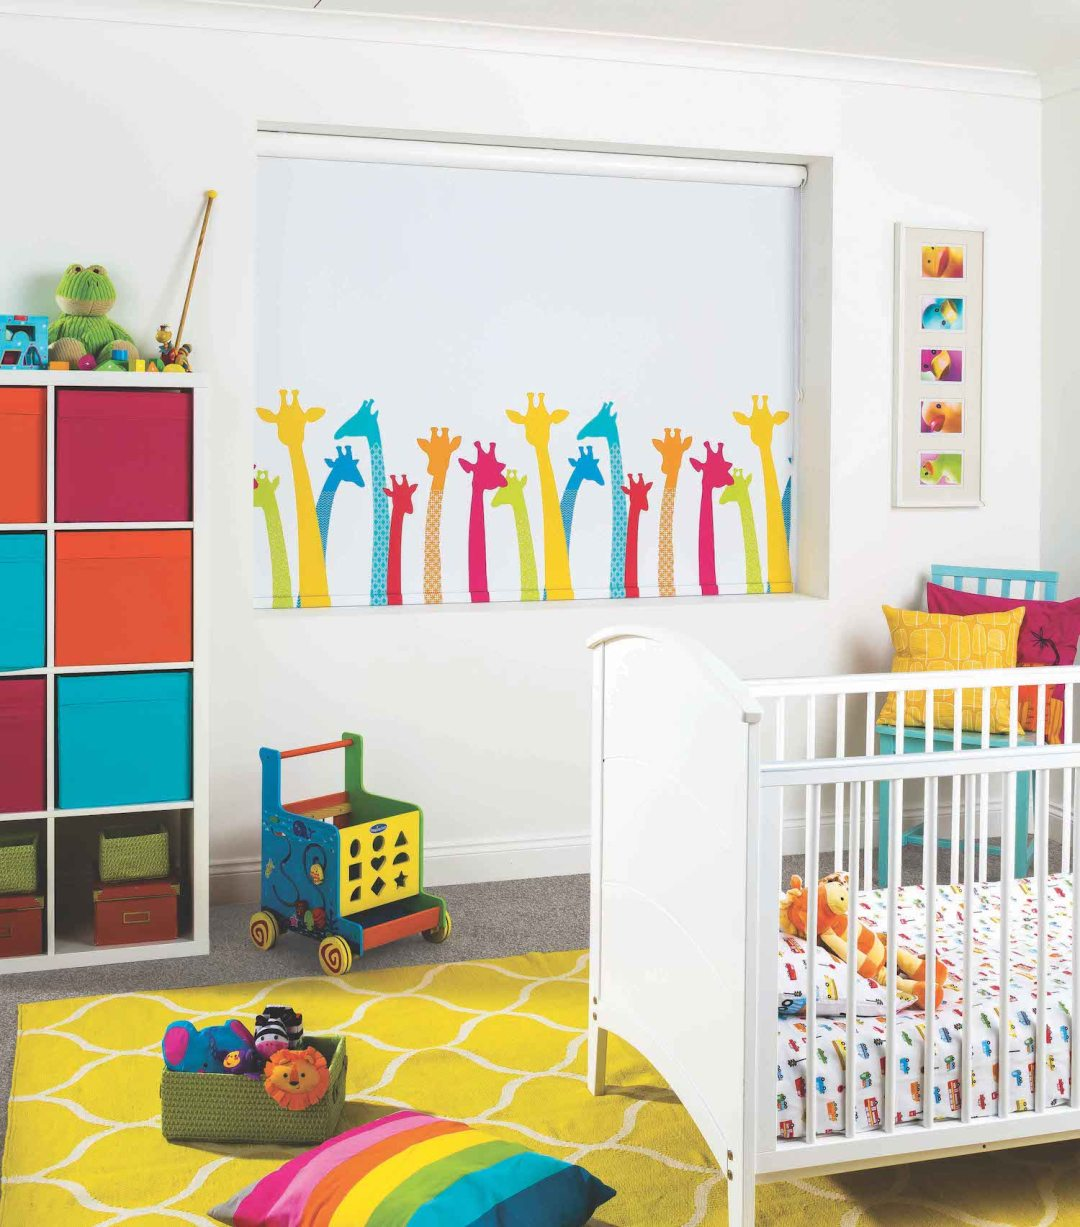 Bright nursery bedroom idea inspiration